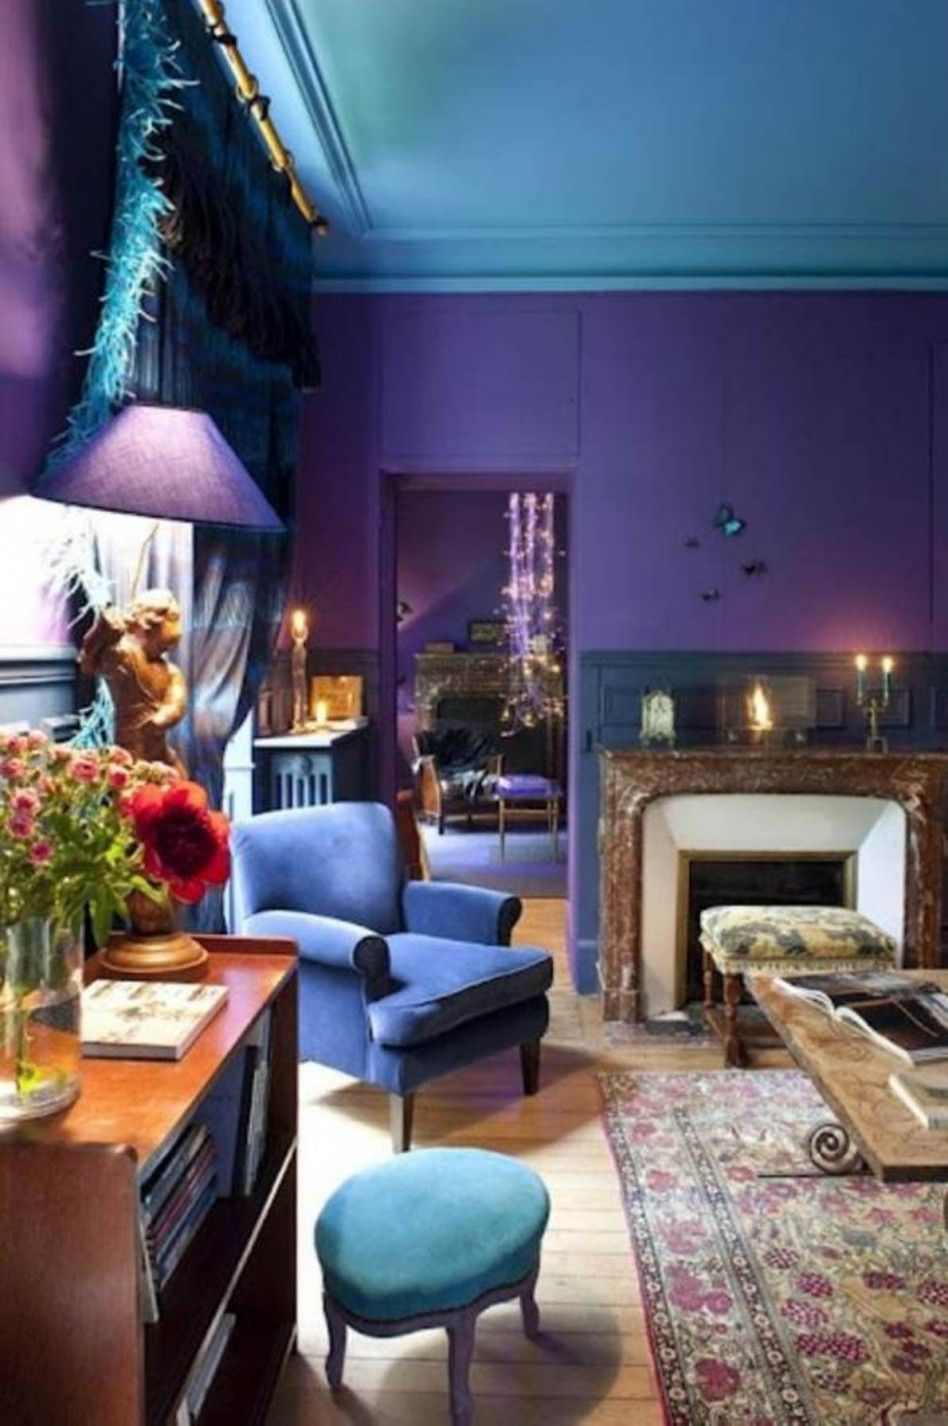 Bedroom Bold Color Combinations For Living Rooms With Purple Color Scheme Also Vintage White Fireplace Desi Living Room Colors Peacock Living Room Room Colors #peacock #color #living #room #ideas